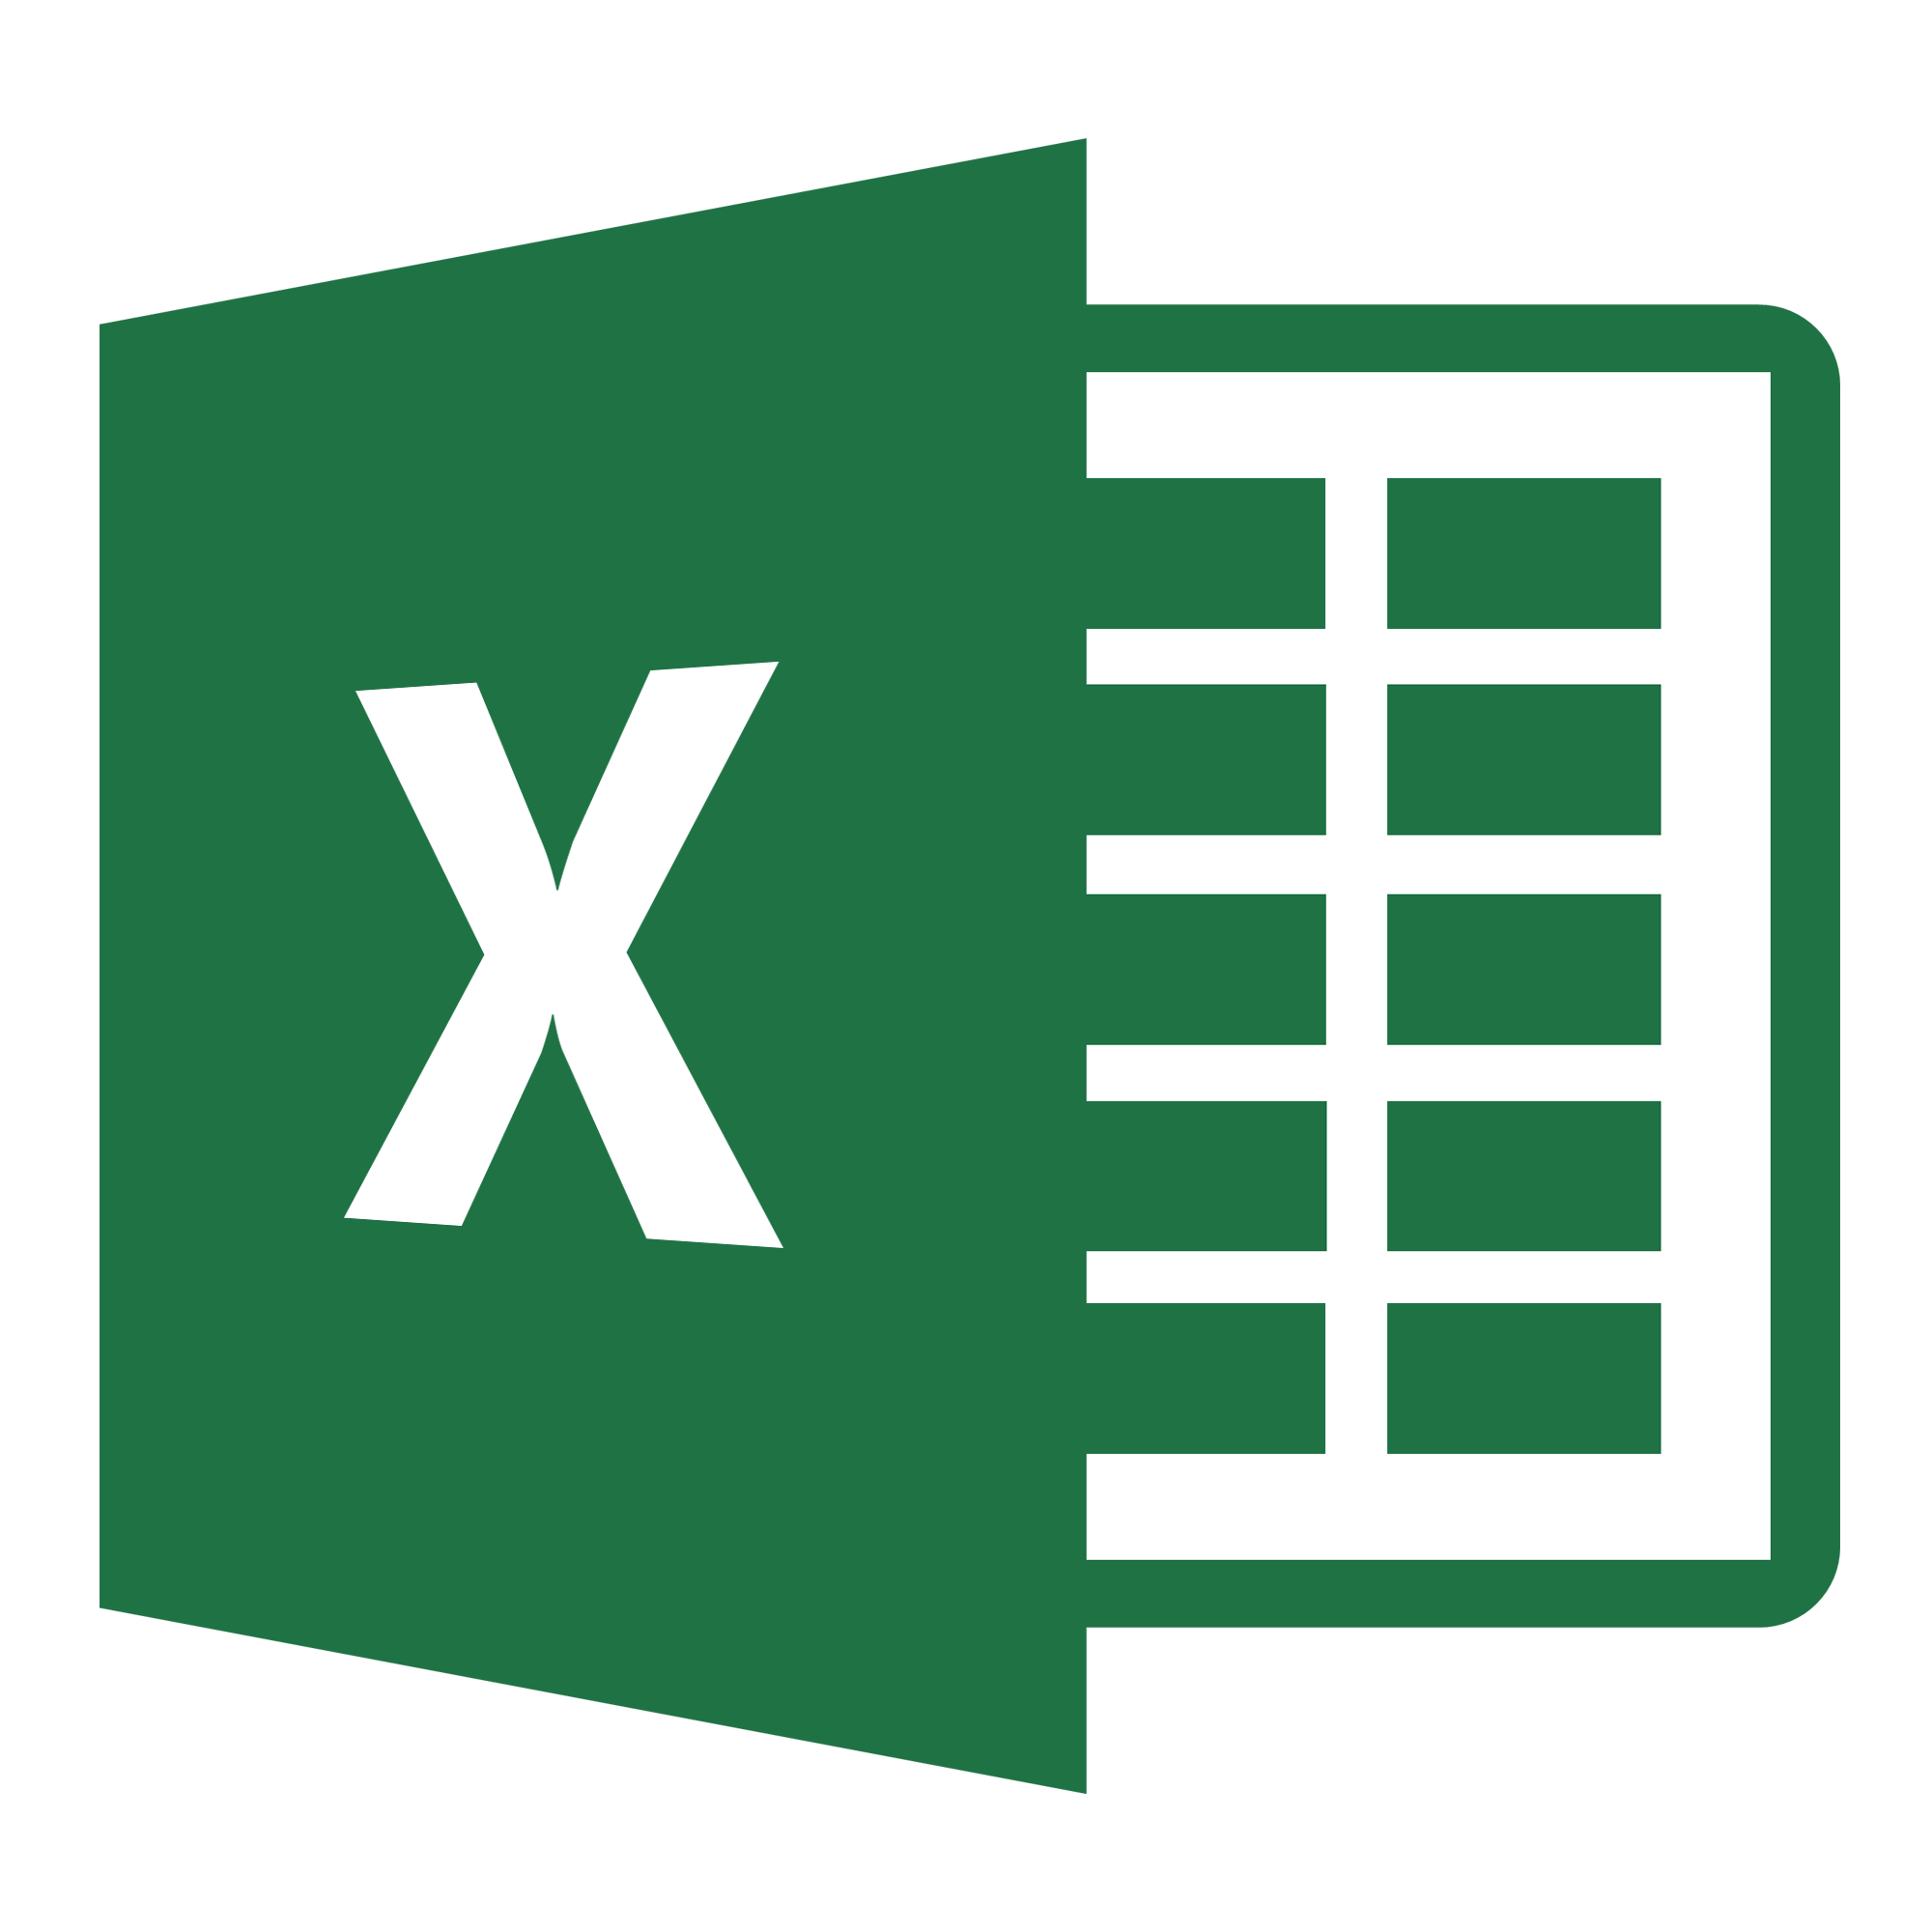 Excel Png Office Xlsx Icon image #3379